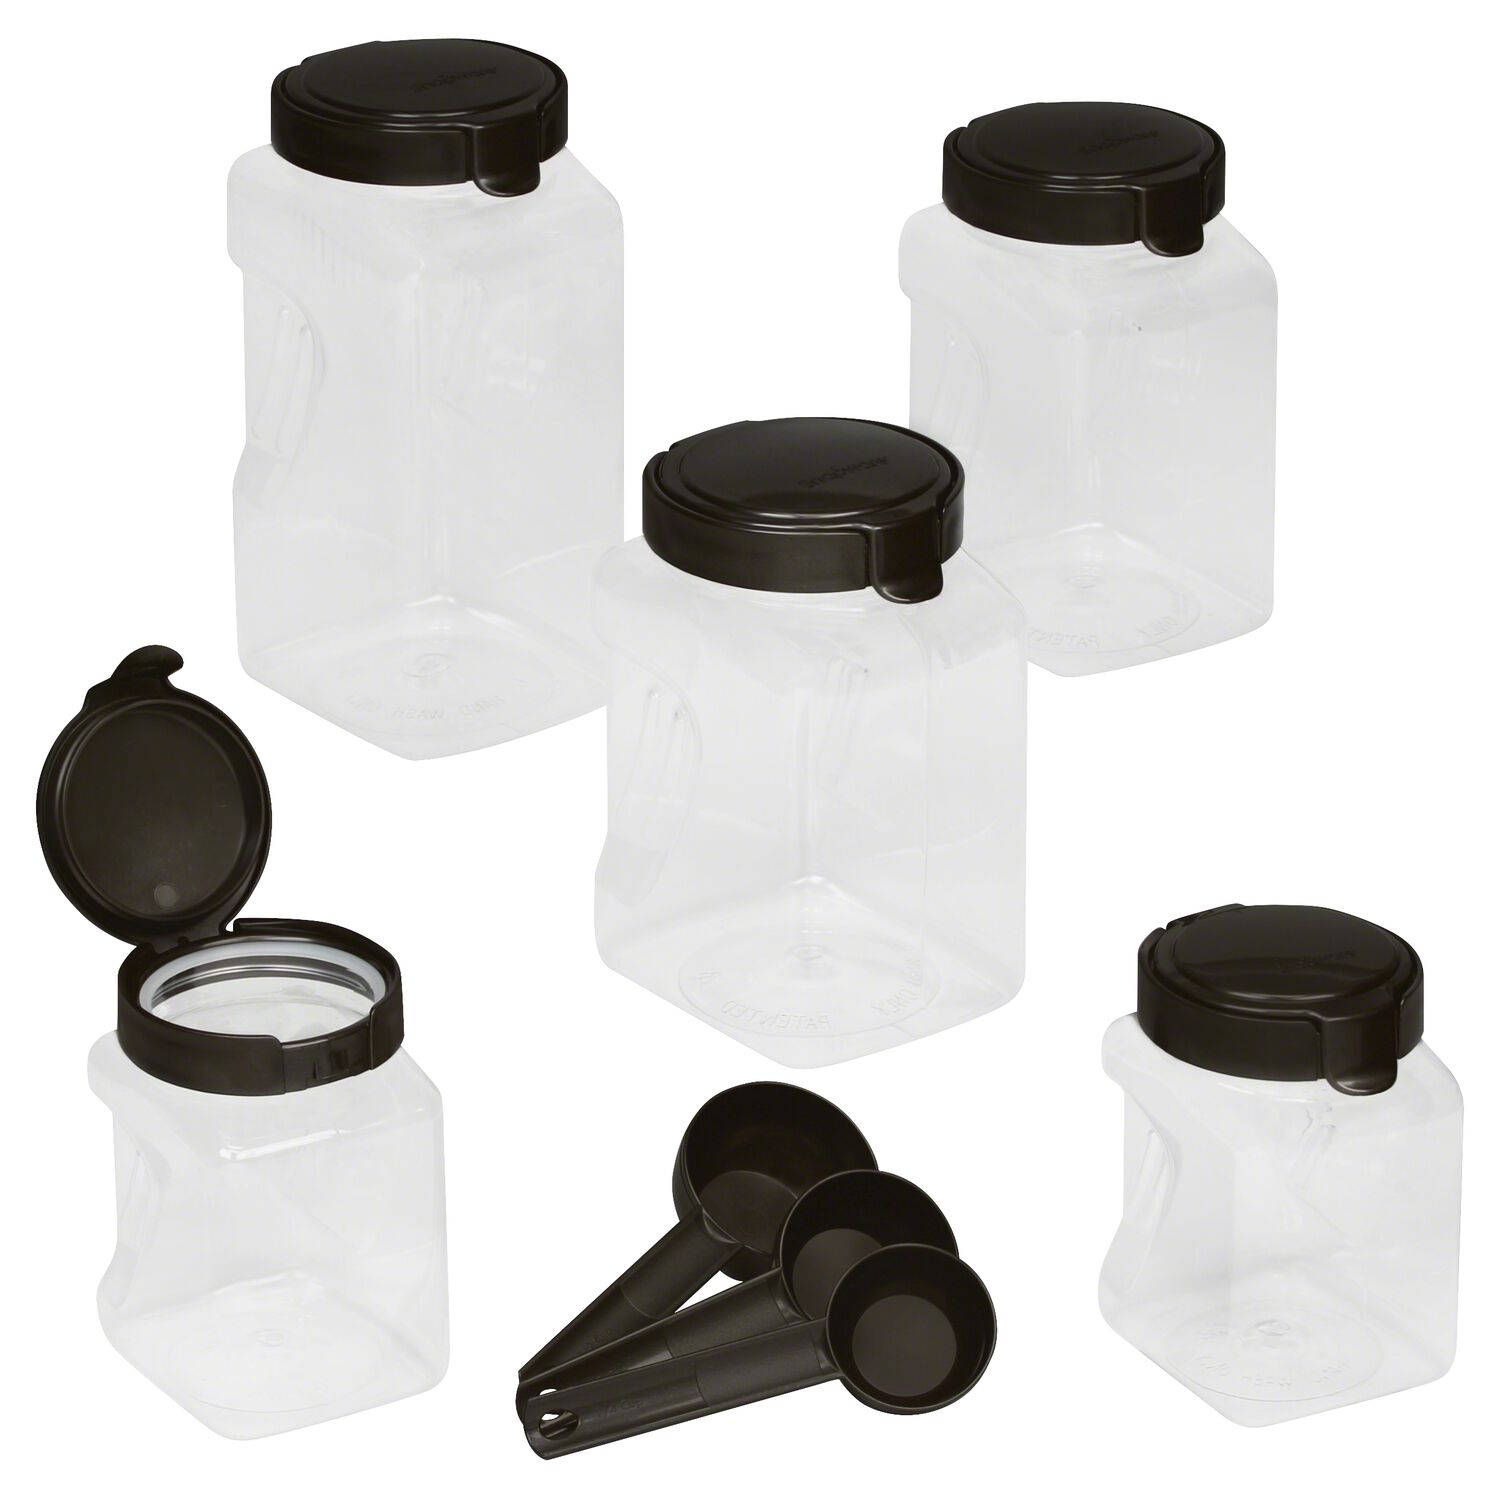 snapware everyday solutions in a snap snapware airtight food storage 10 pc square canister set